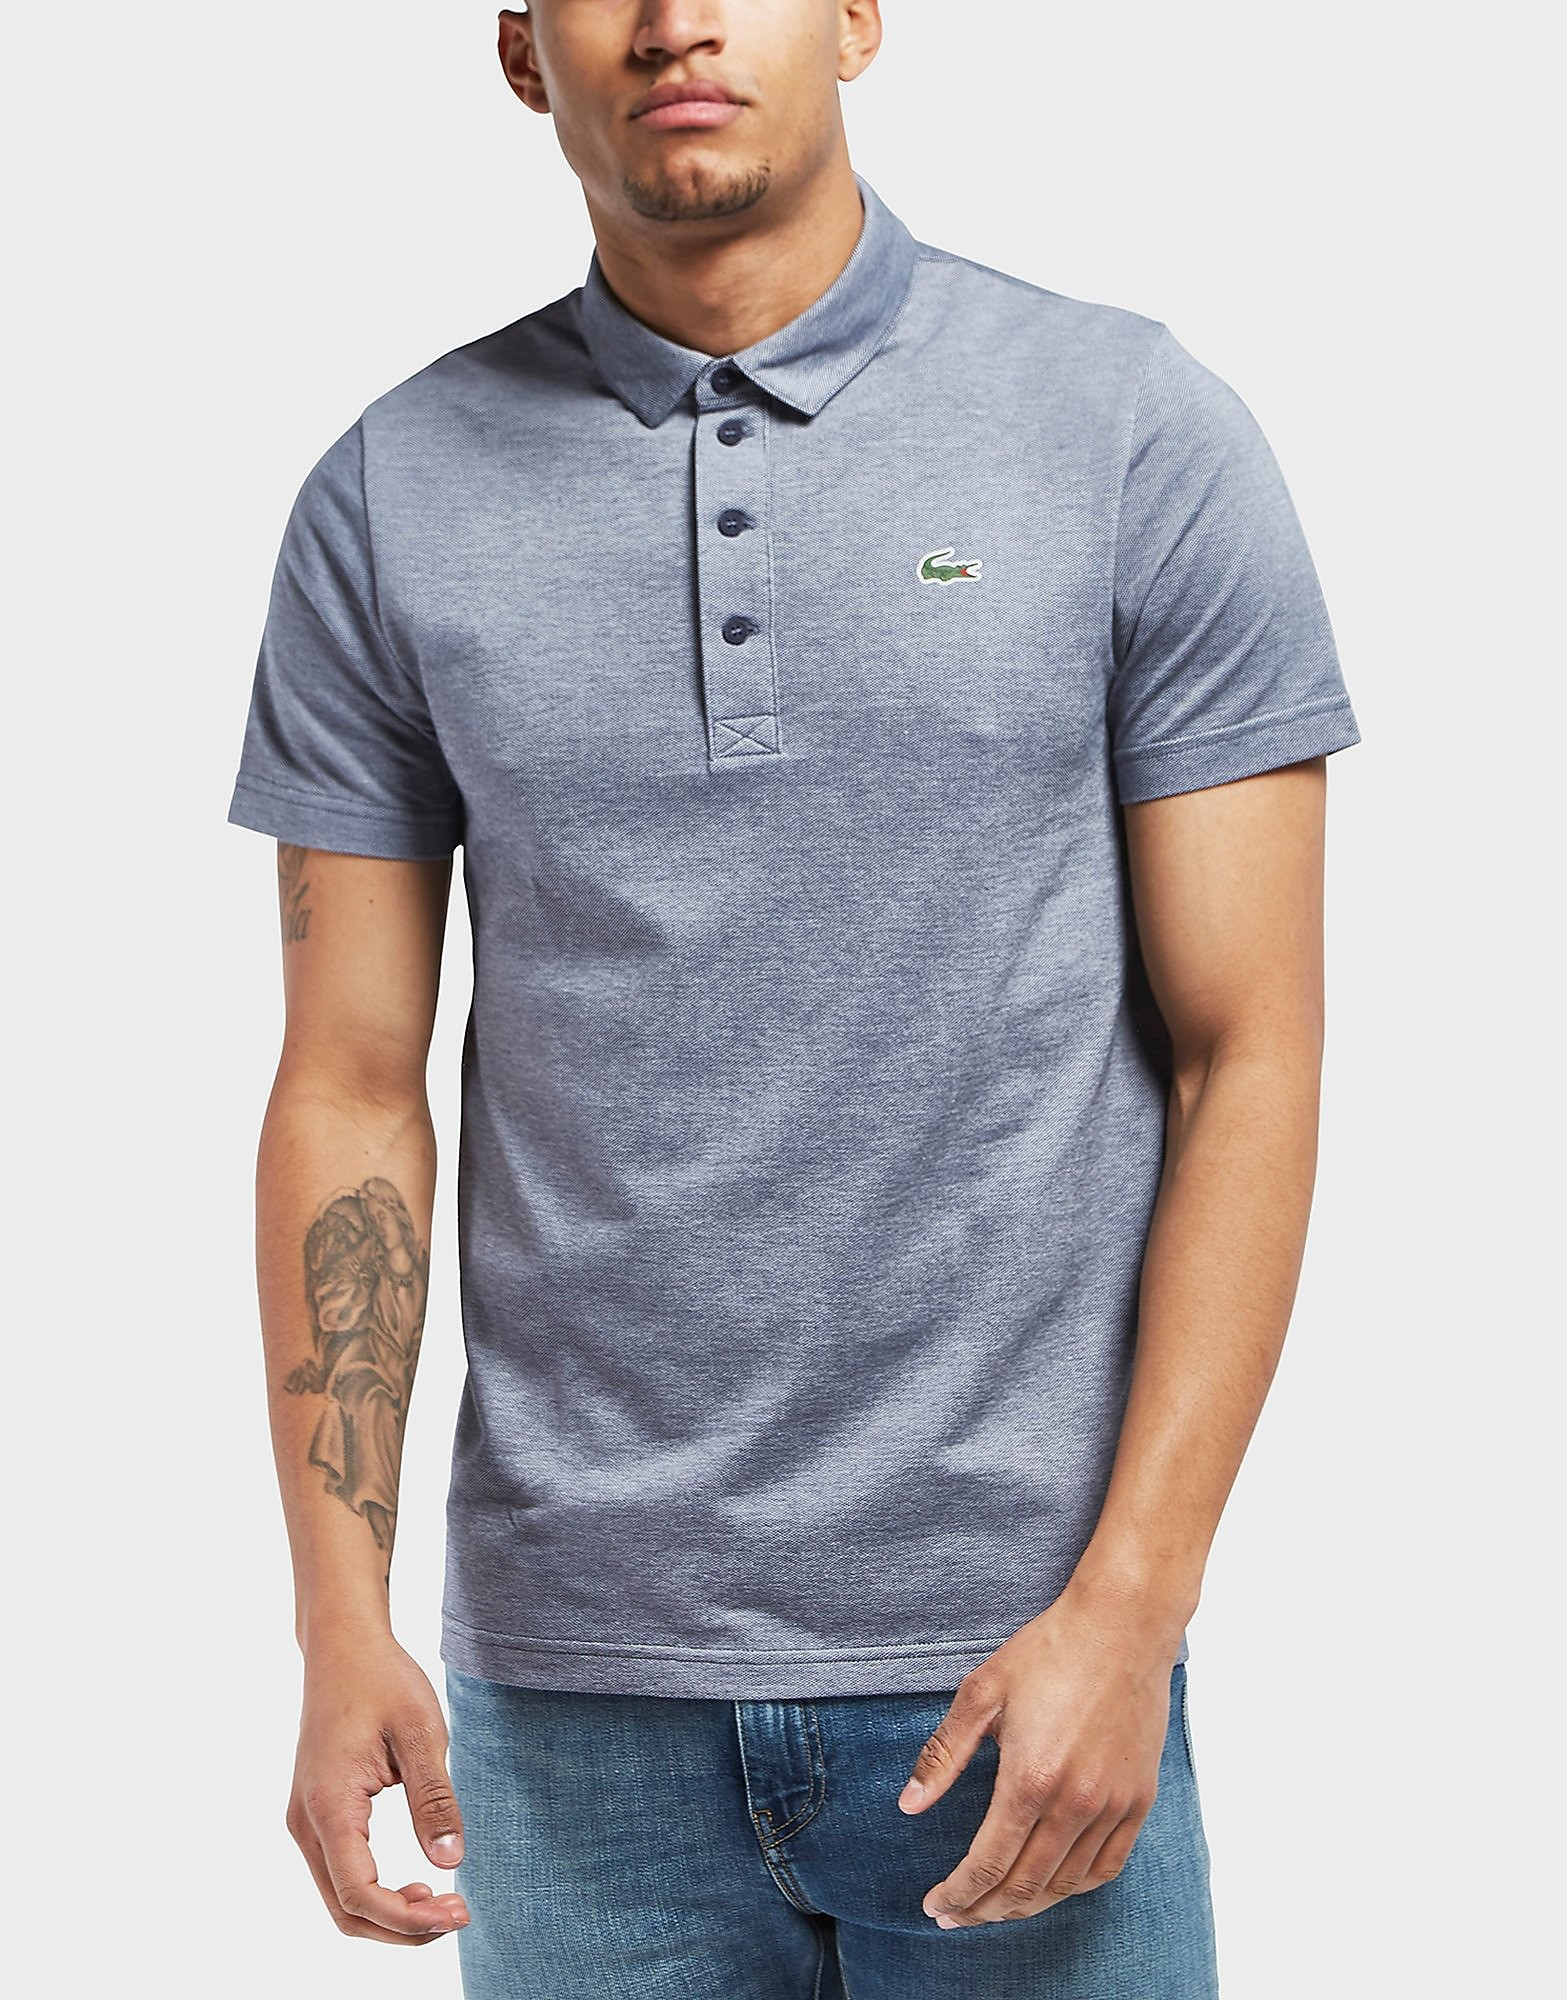 Lacoste Beye Jersey Short Sleeve Polo Shirt